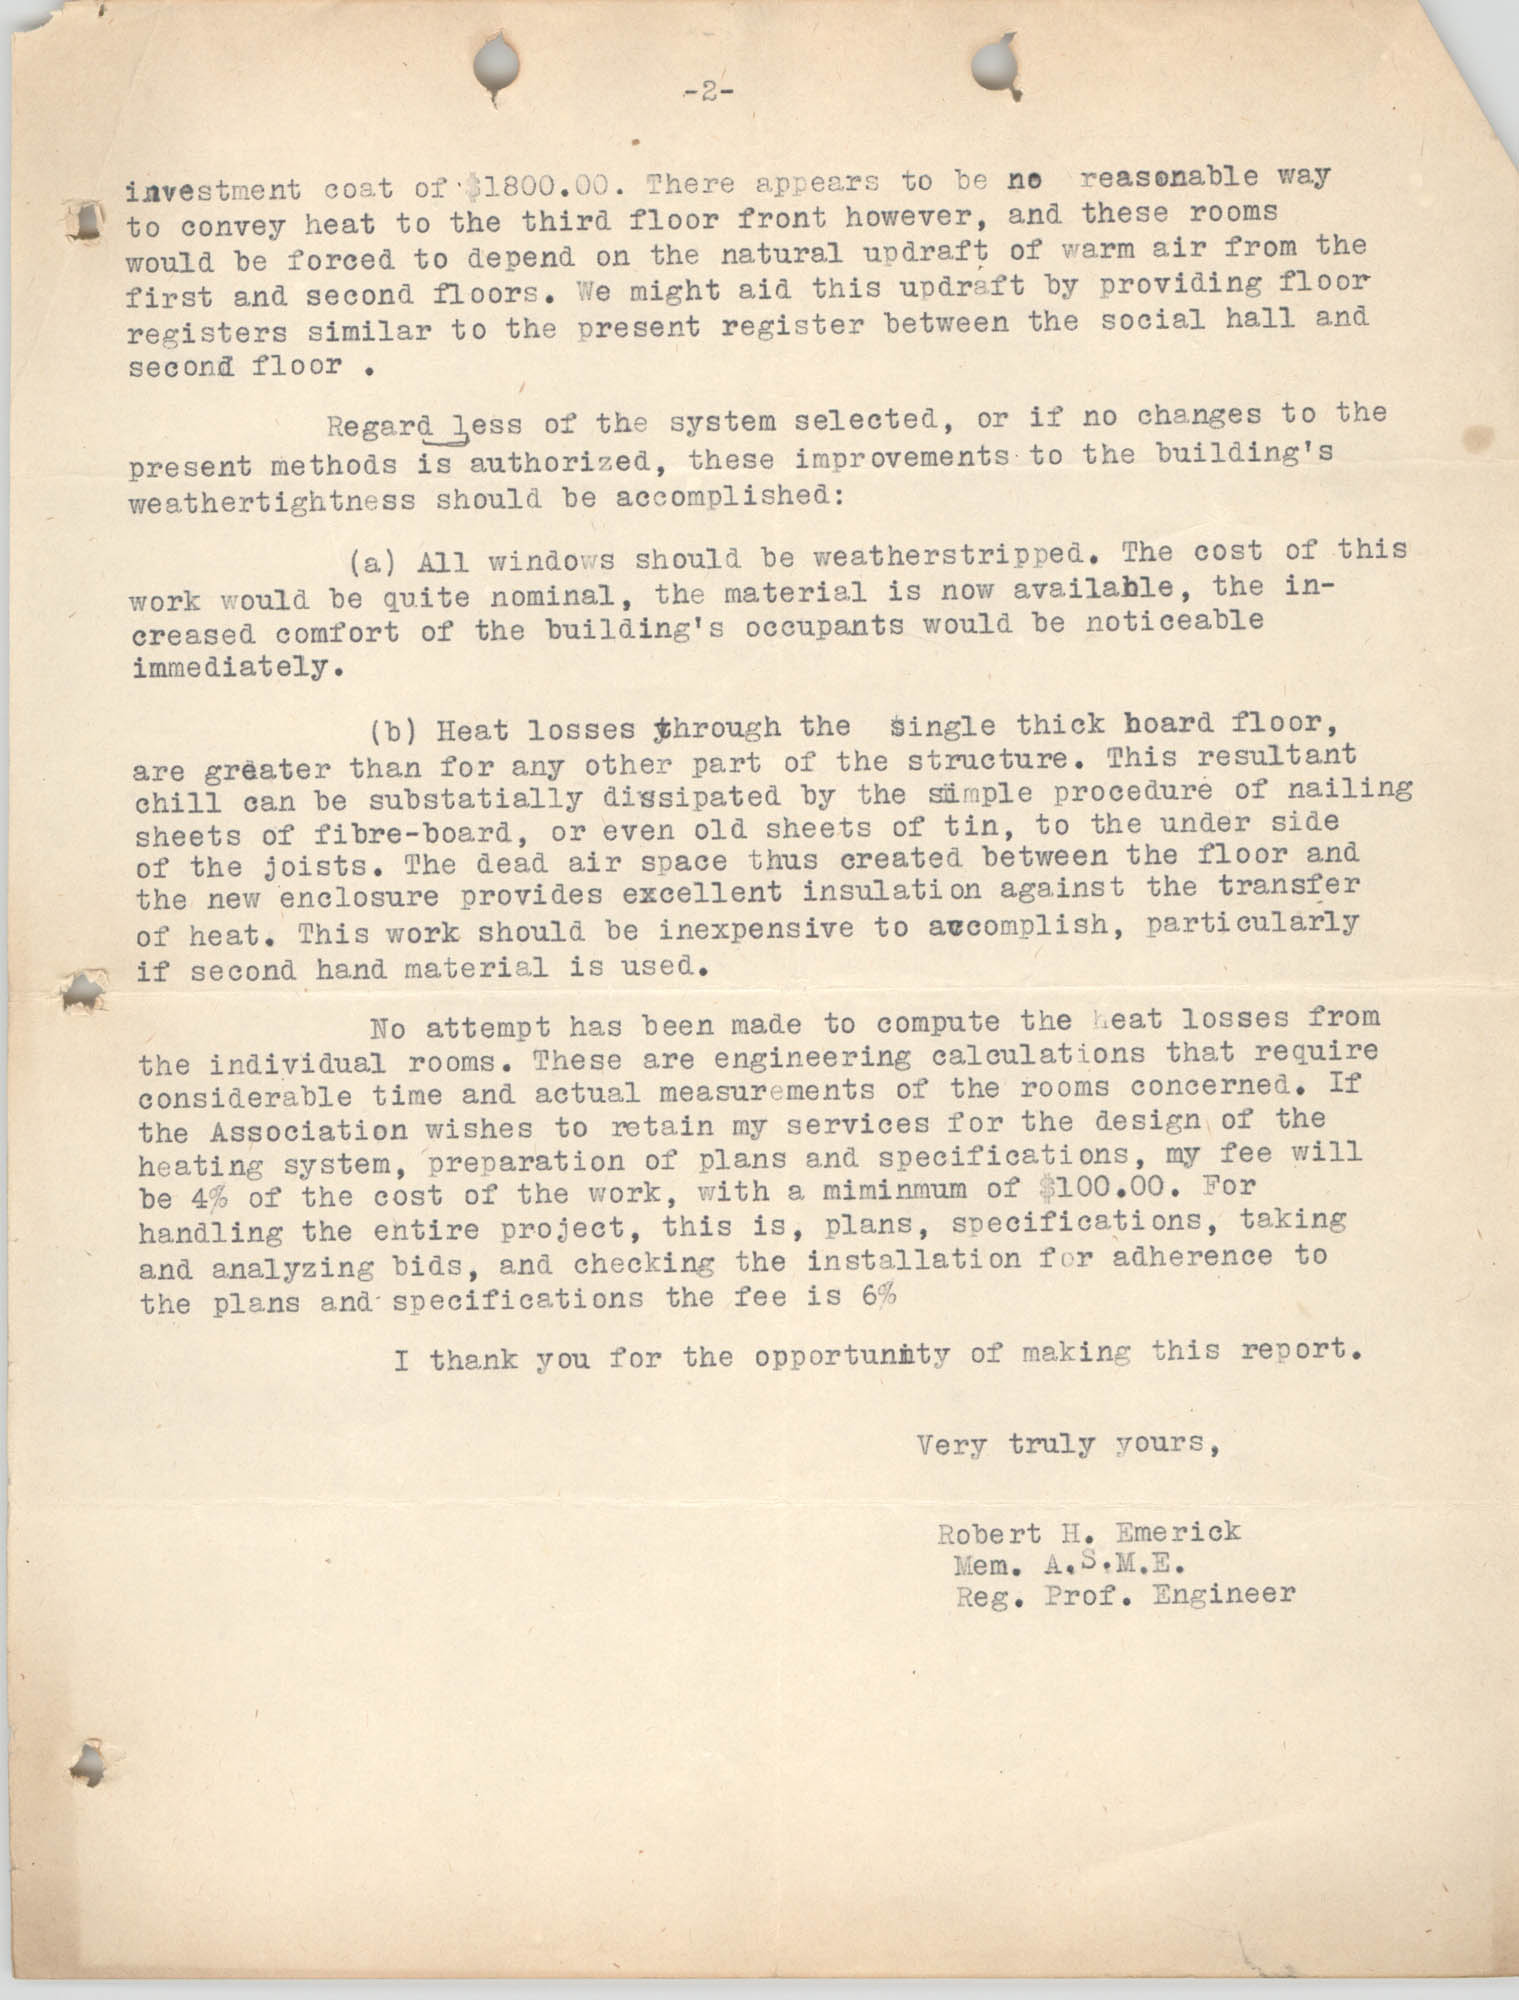 Letter from Robert H. Emerick to Y.W.C.A., September 18, 1947, Page 2